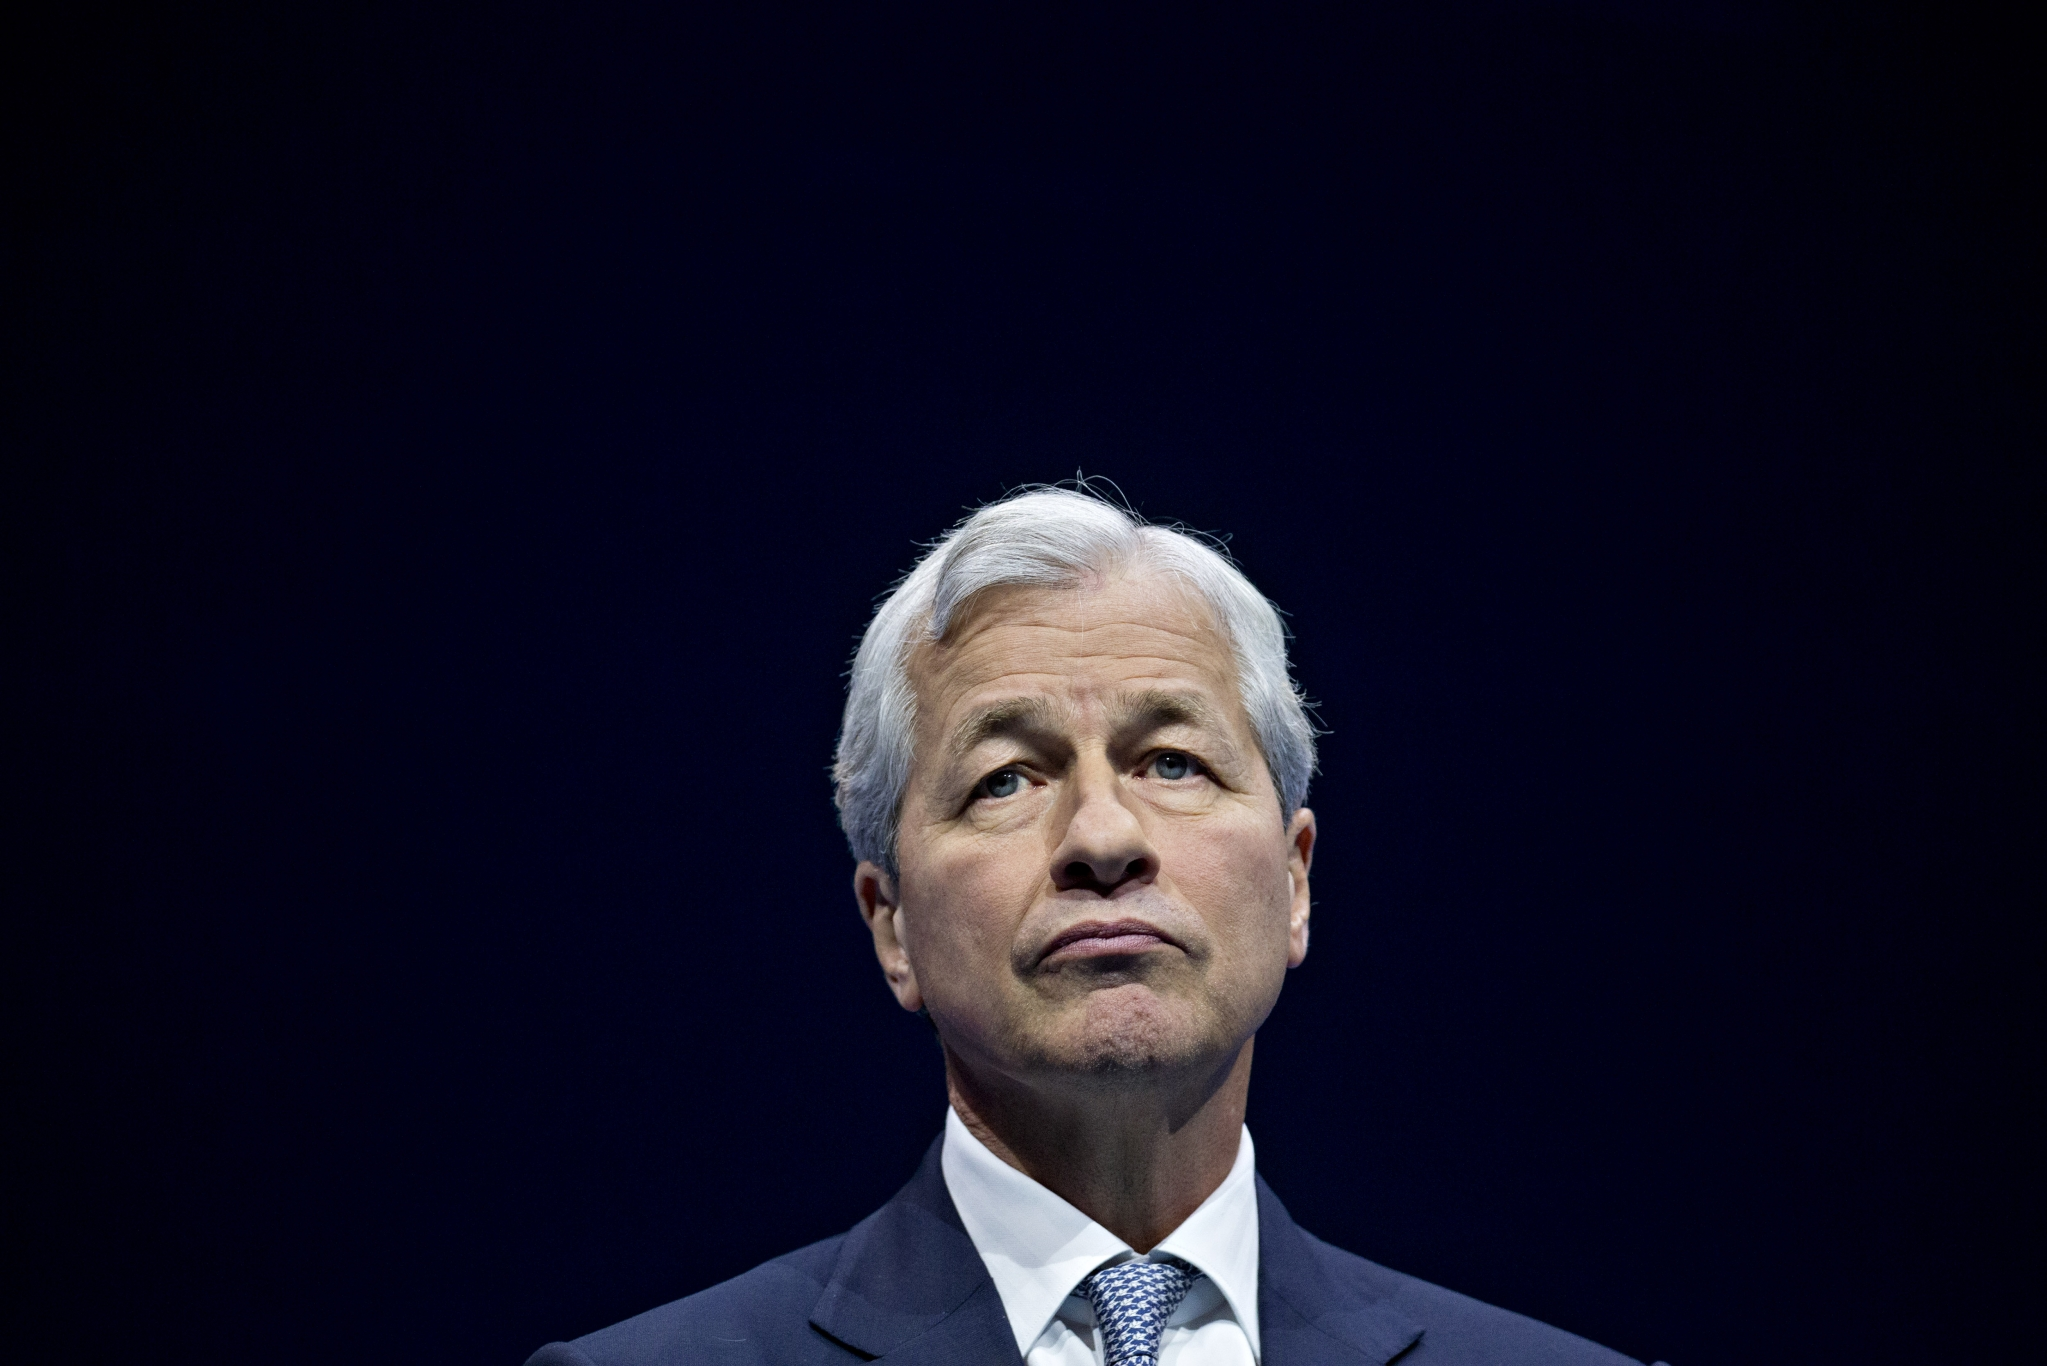 Jpmorgan To Up Tech Spending As Higher Rates Boost Revenue